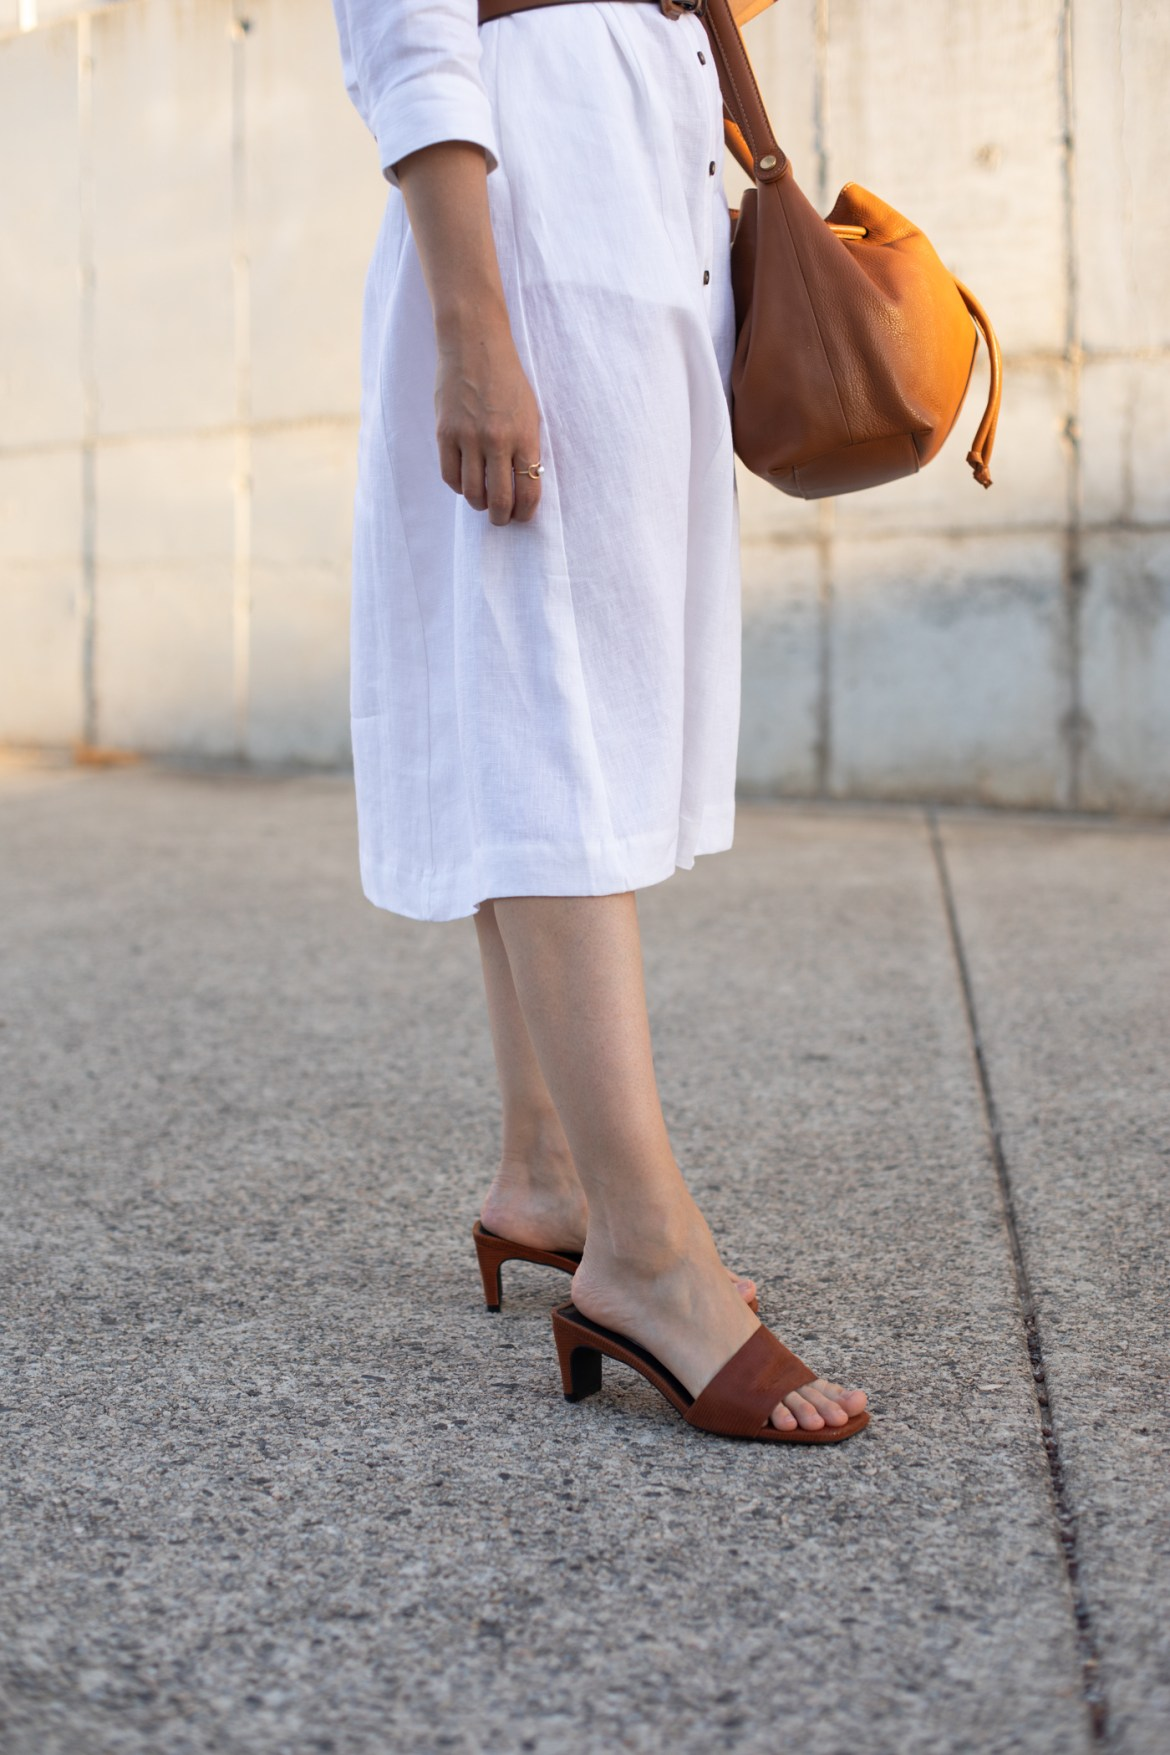 tan mules and white dress outfit idea